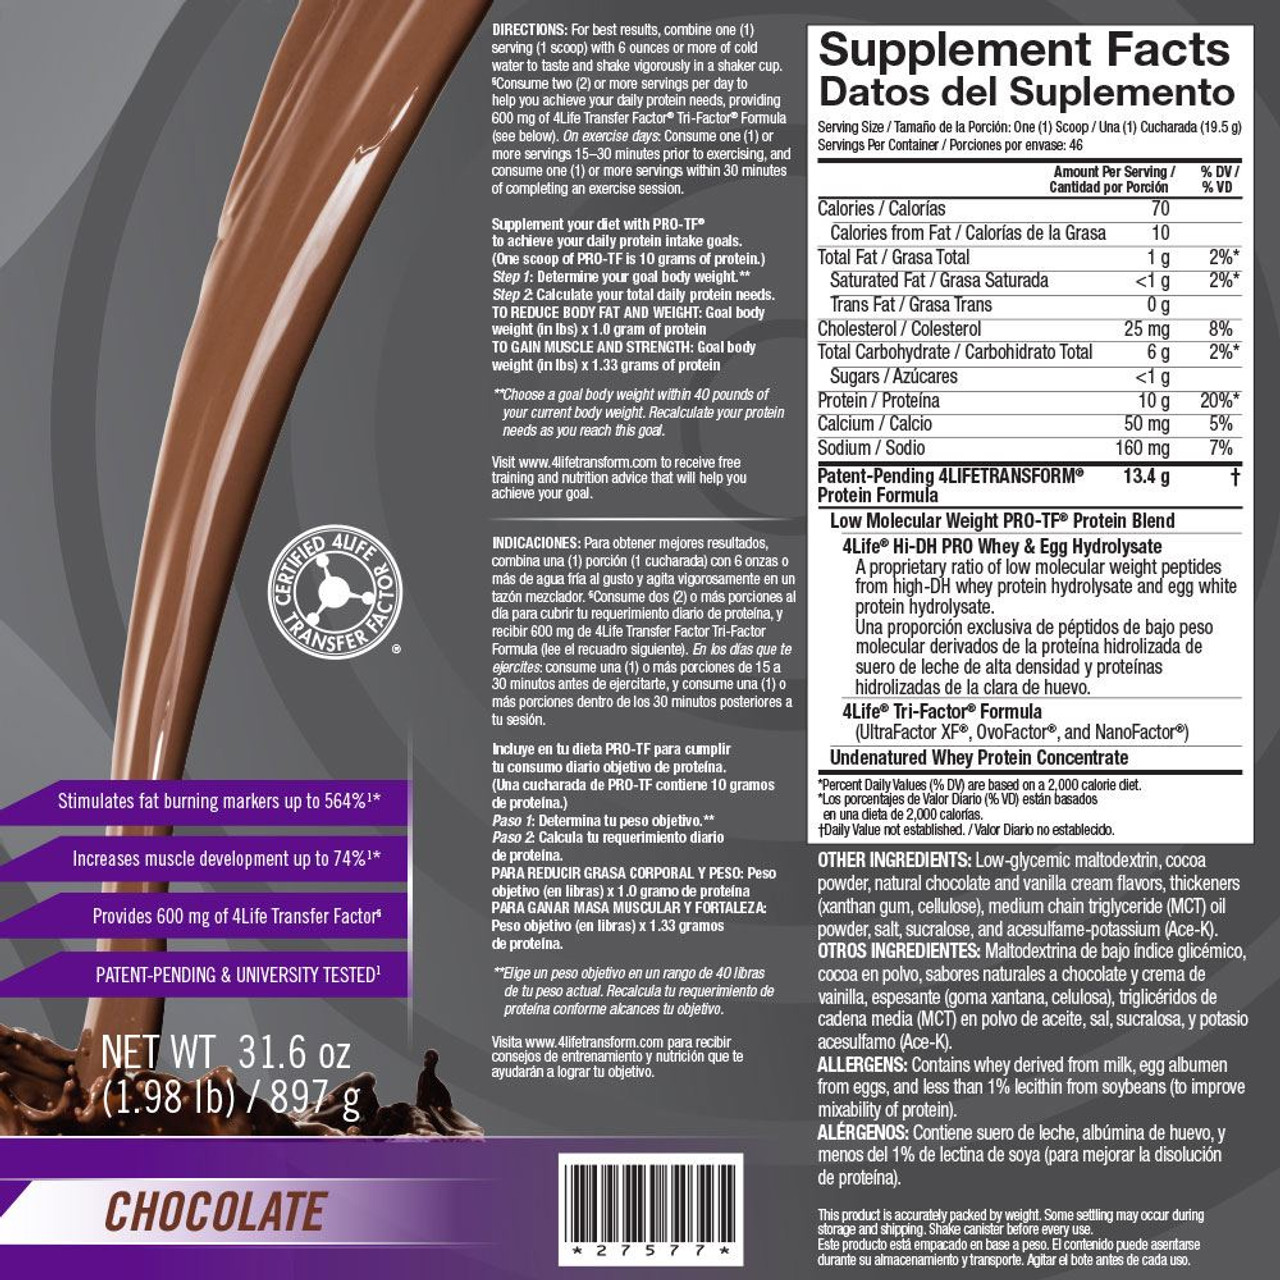 PRO-TF Powder Chocolate- 46 Servings